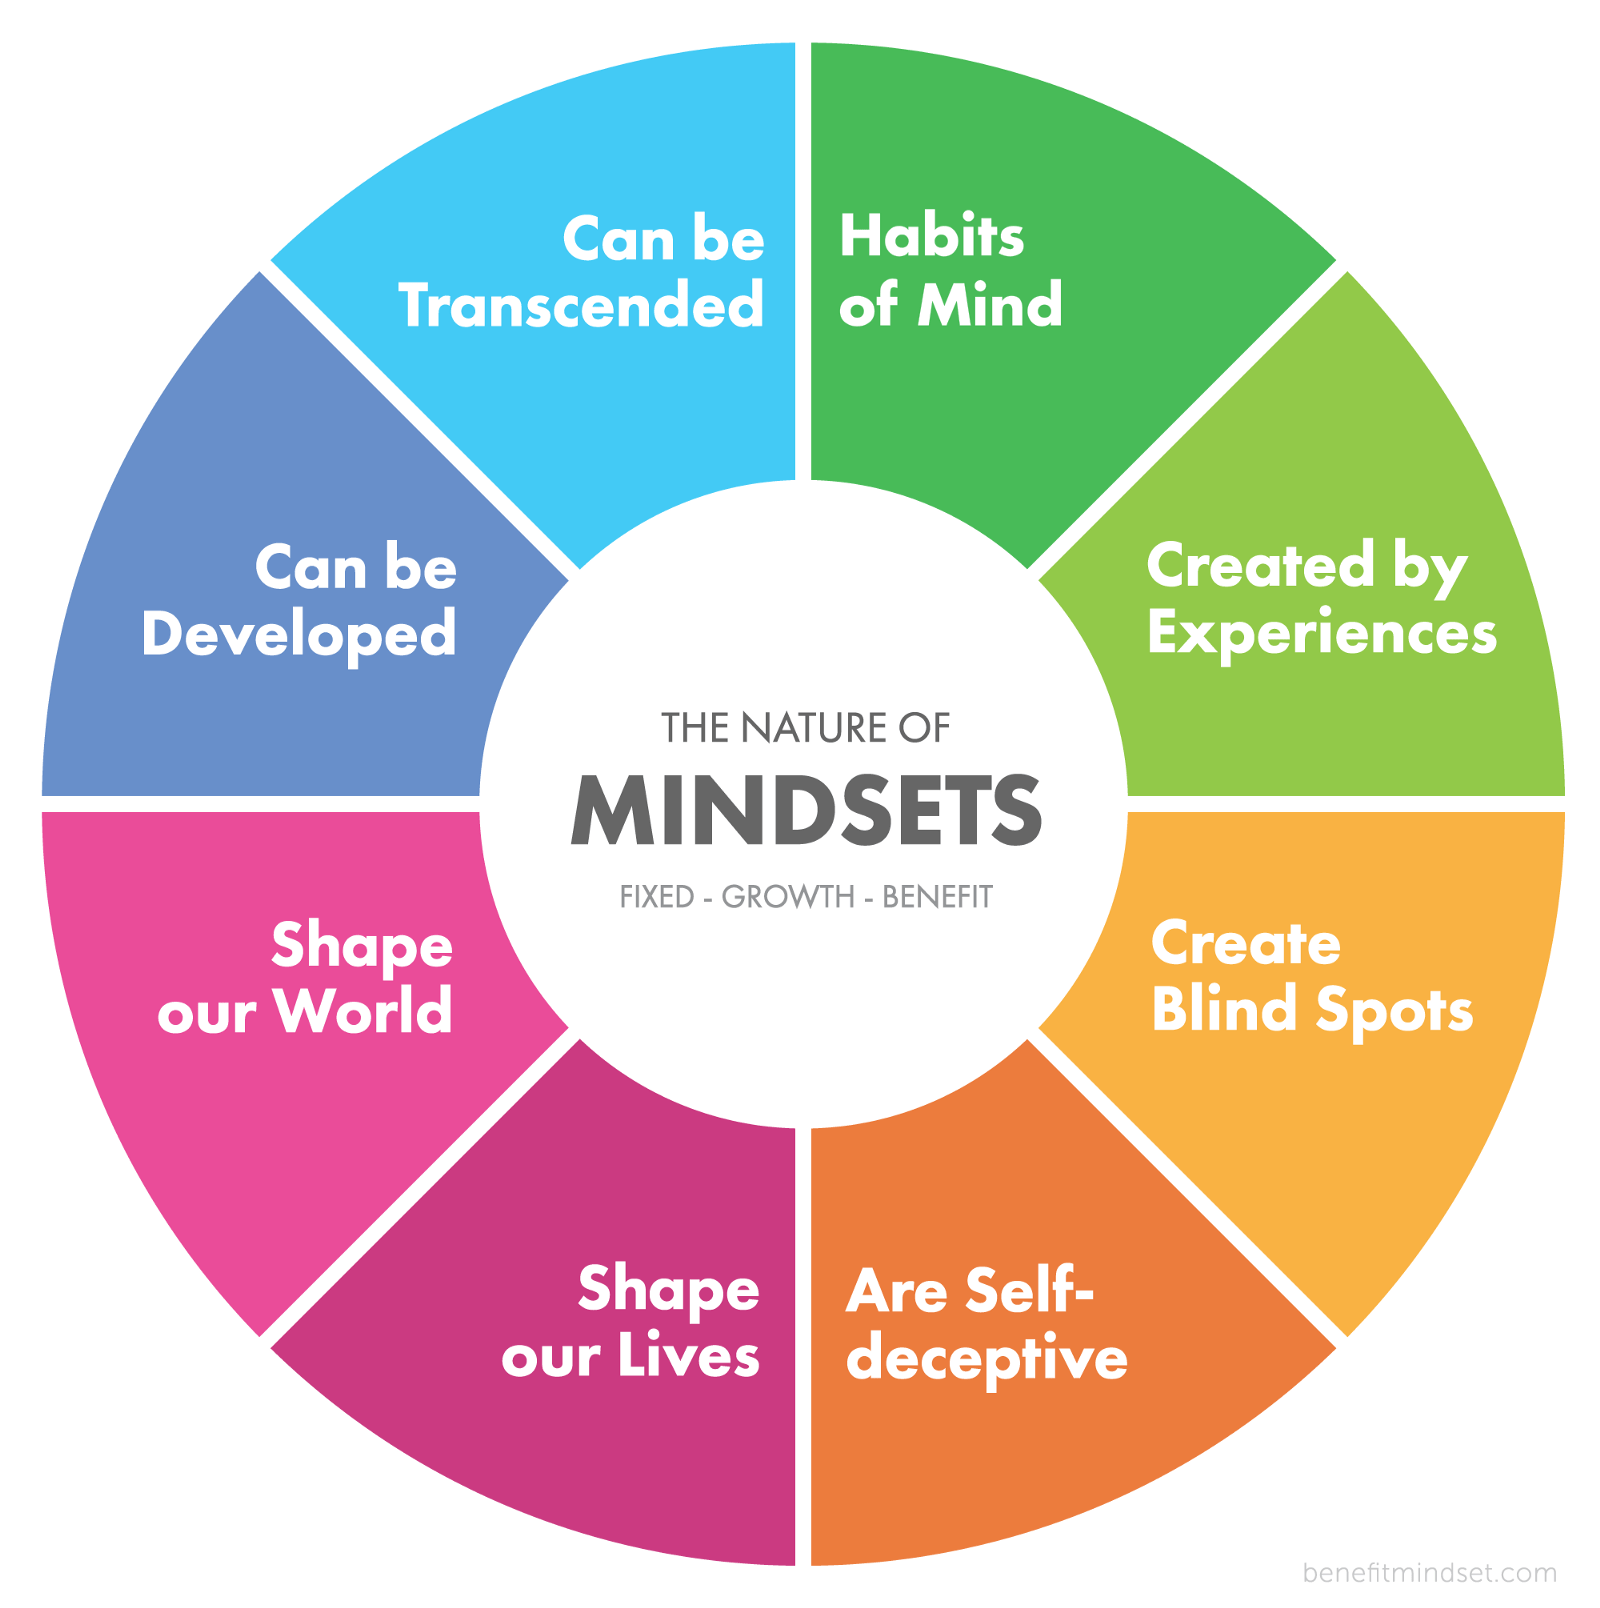 nigel holmes diagram mindset basic wiring for car stereo of mindsets great installation the nature benefit medium rh com by